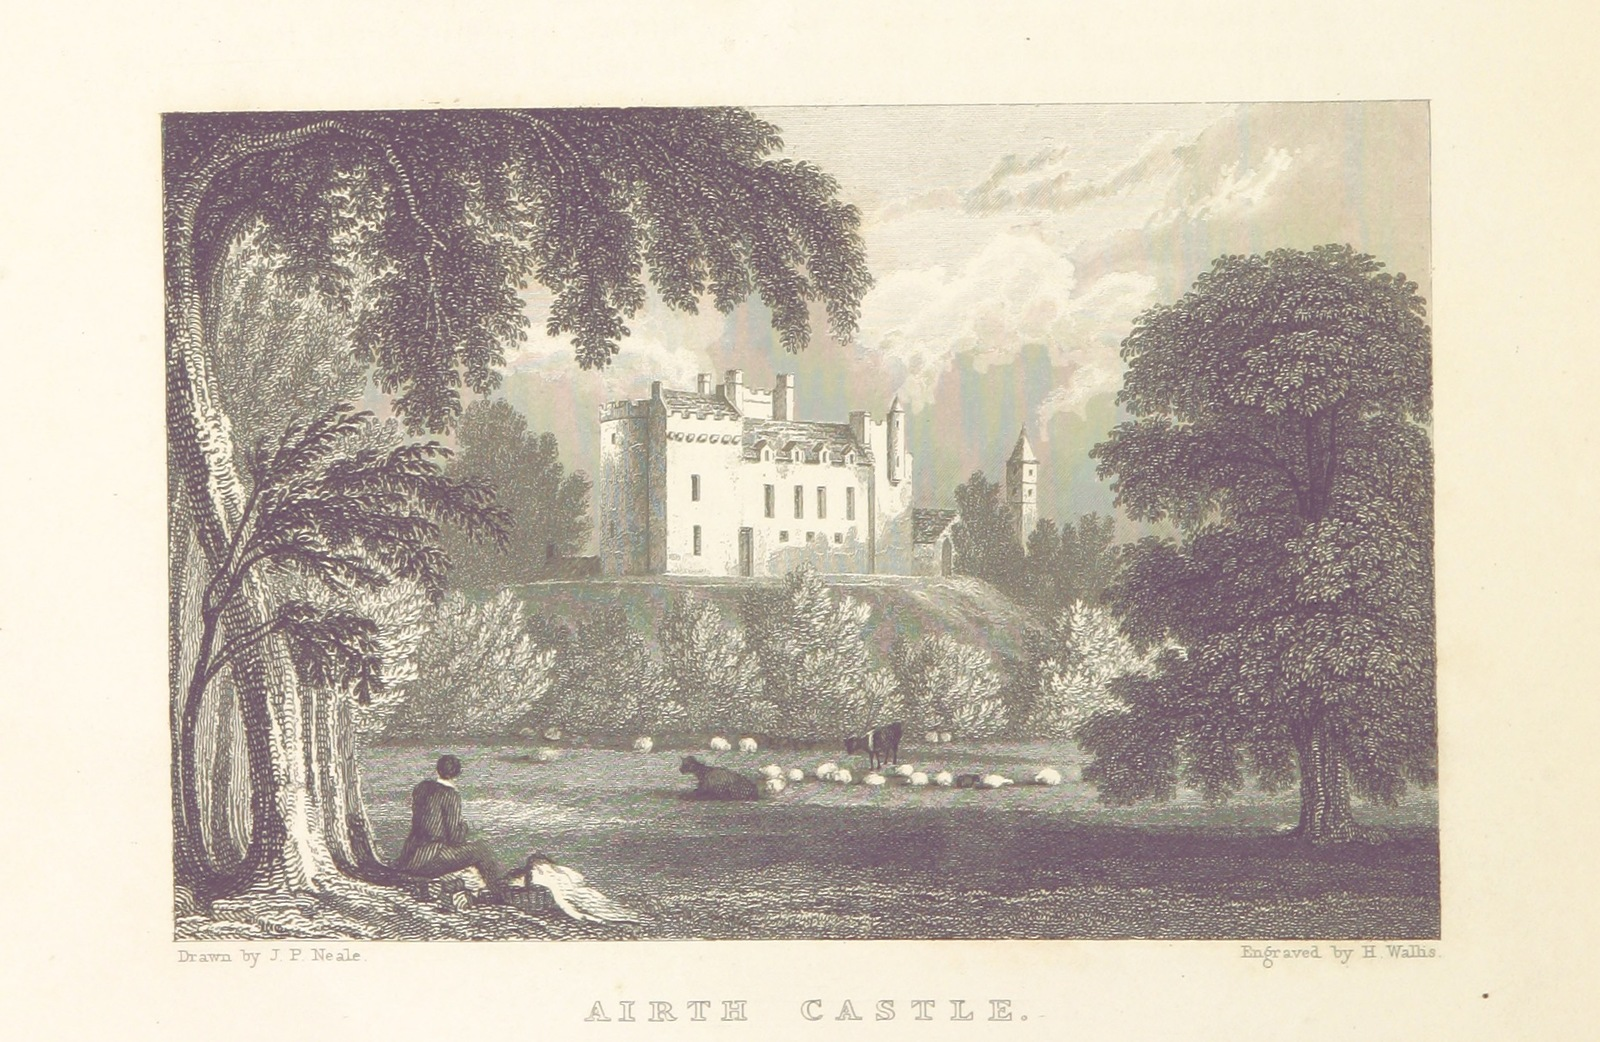 """Airth Castle from """"Modern Athens, displayed in a series of views; or, Edinburgh in the nineteenth century; exhibiting the whole of the new buildings, modern improvements, antiquities, & picturesque scenery of the Scottish metropolis & its environs, from original drawings by Mr. T. H. Shepherd. With historical, topographical & critical illustrations [by John Britton]"""""""